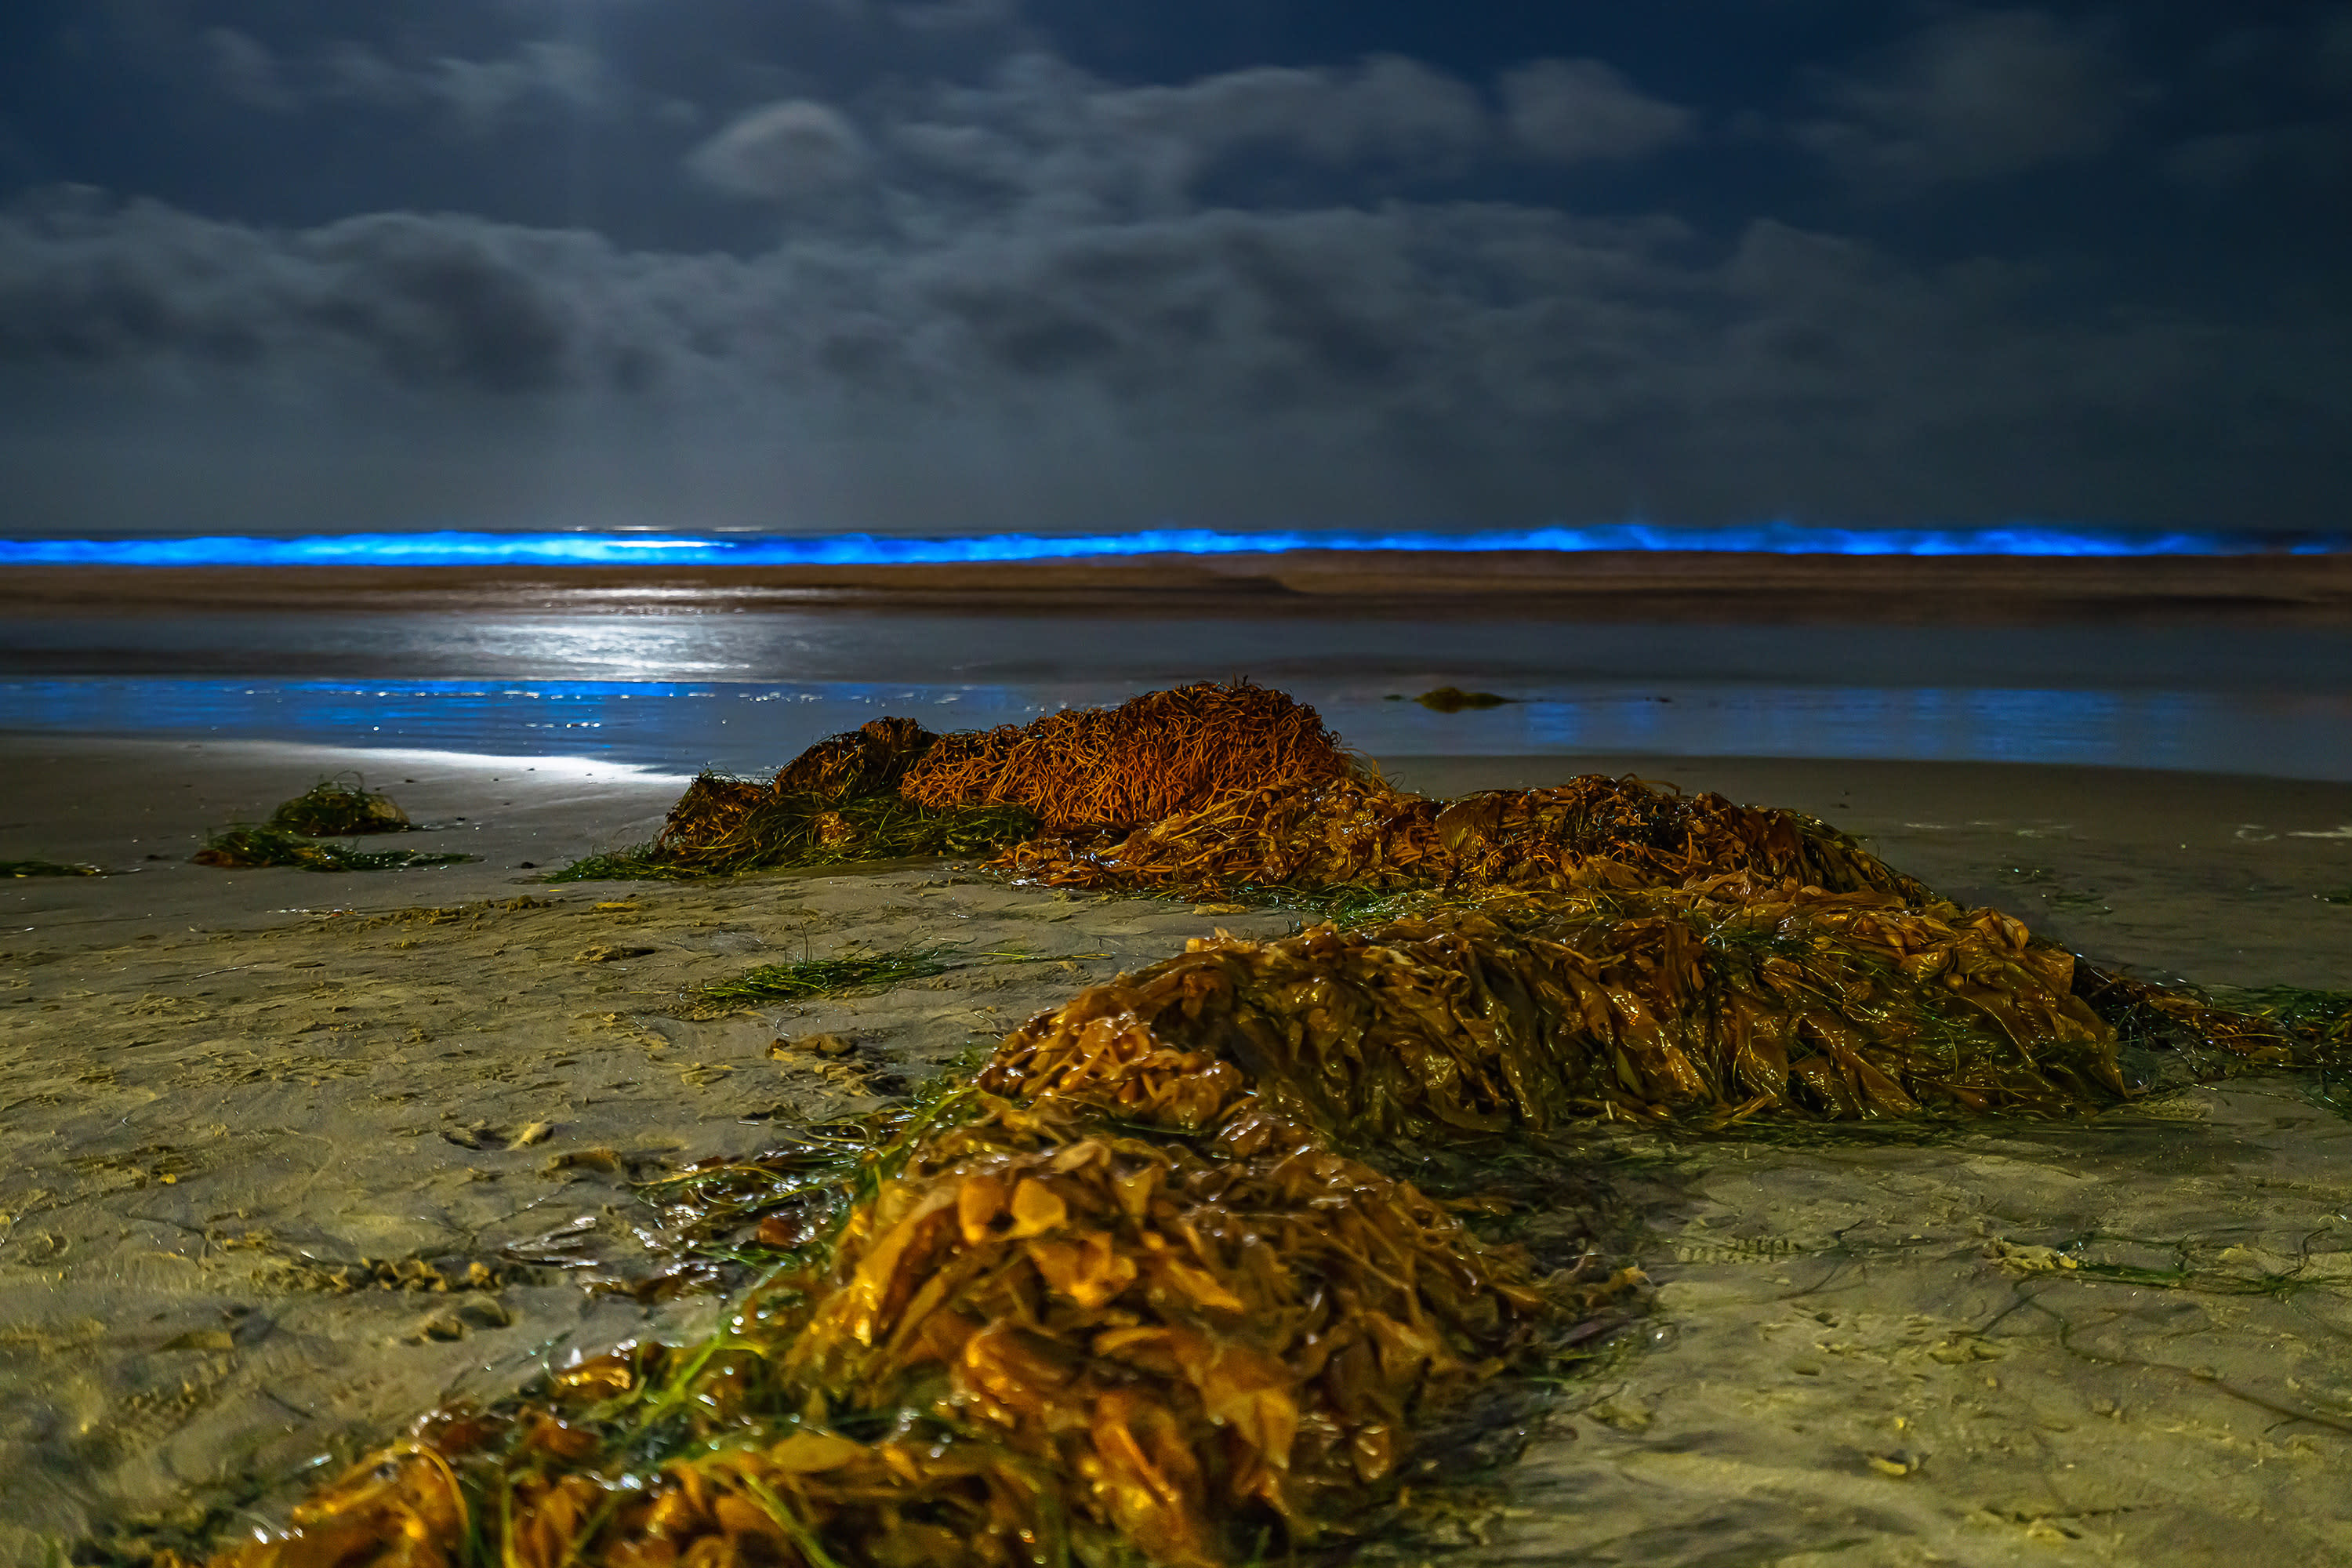 <div class='title'>           FEATURED ON THE NEWS   La Jolla Shores Bioluminescence and Seaweed by McClean Photography5 2 2020         </div>